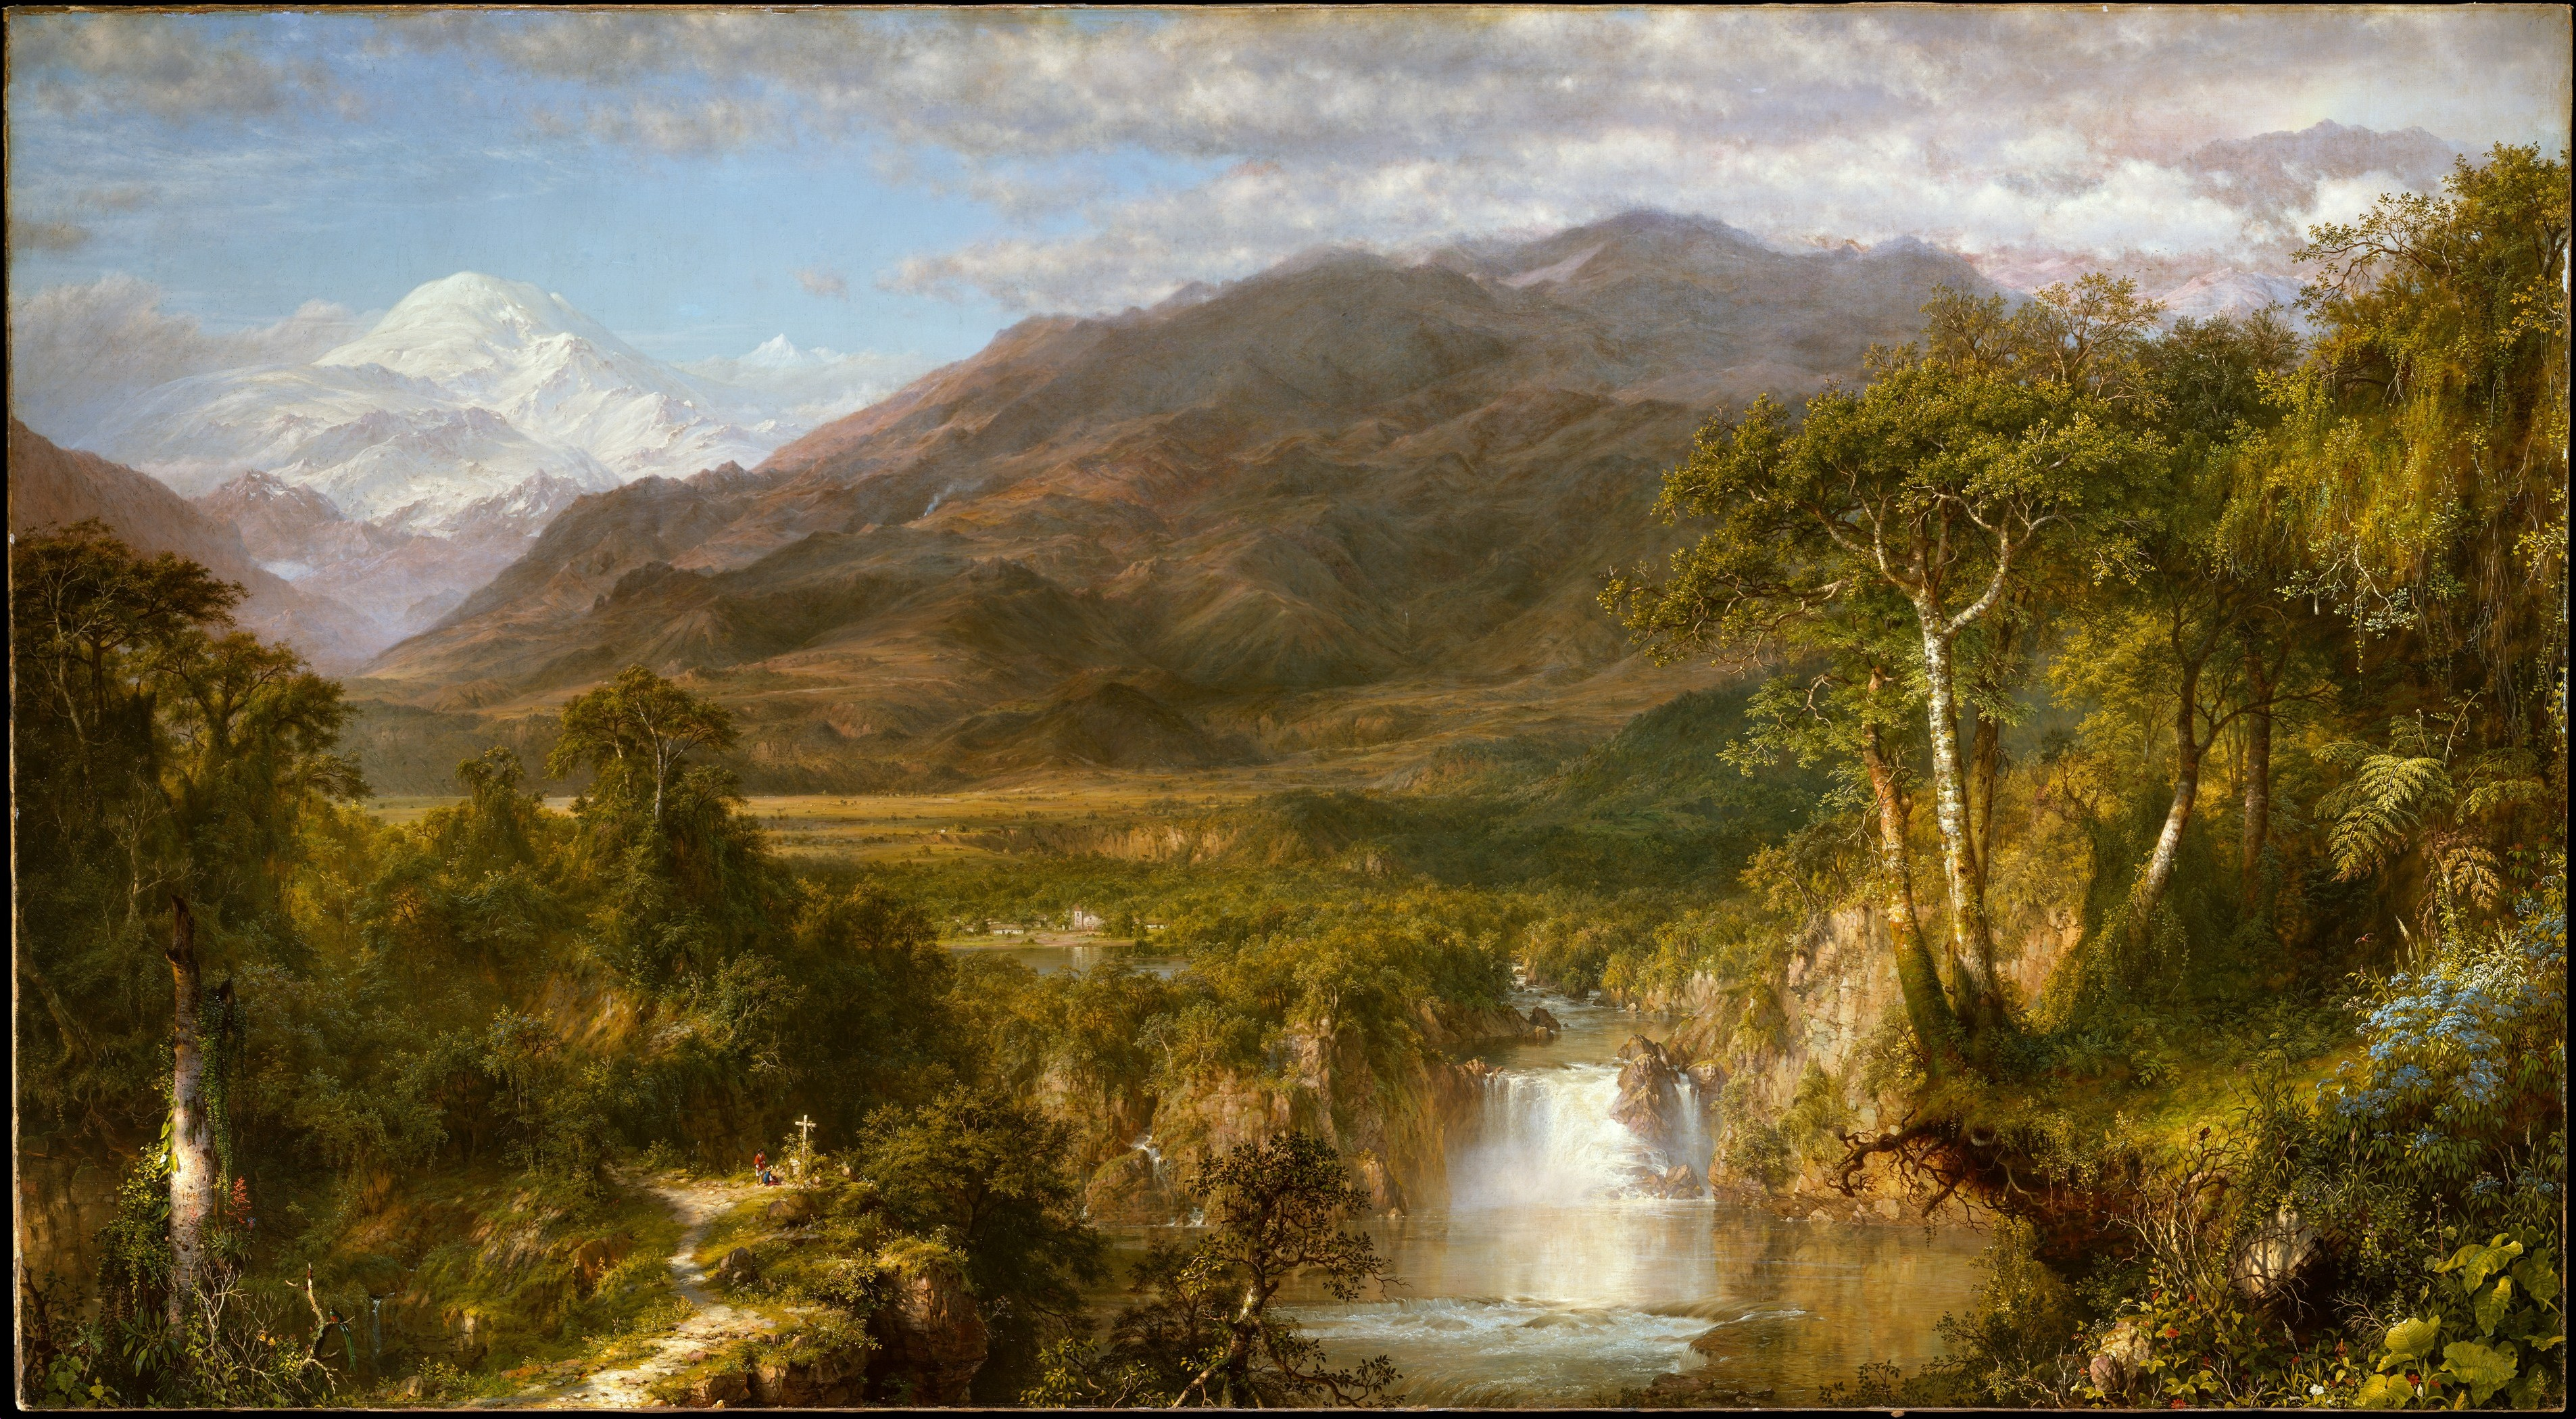 Painting, Heart of the Andes,1859 Frederic Edwin Church American